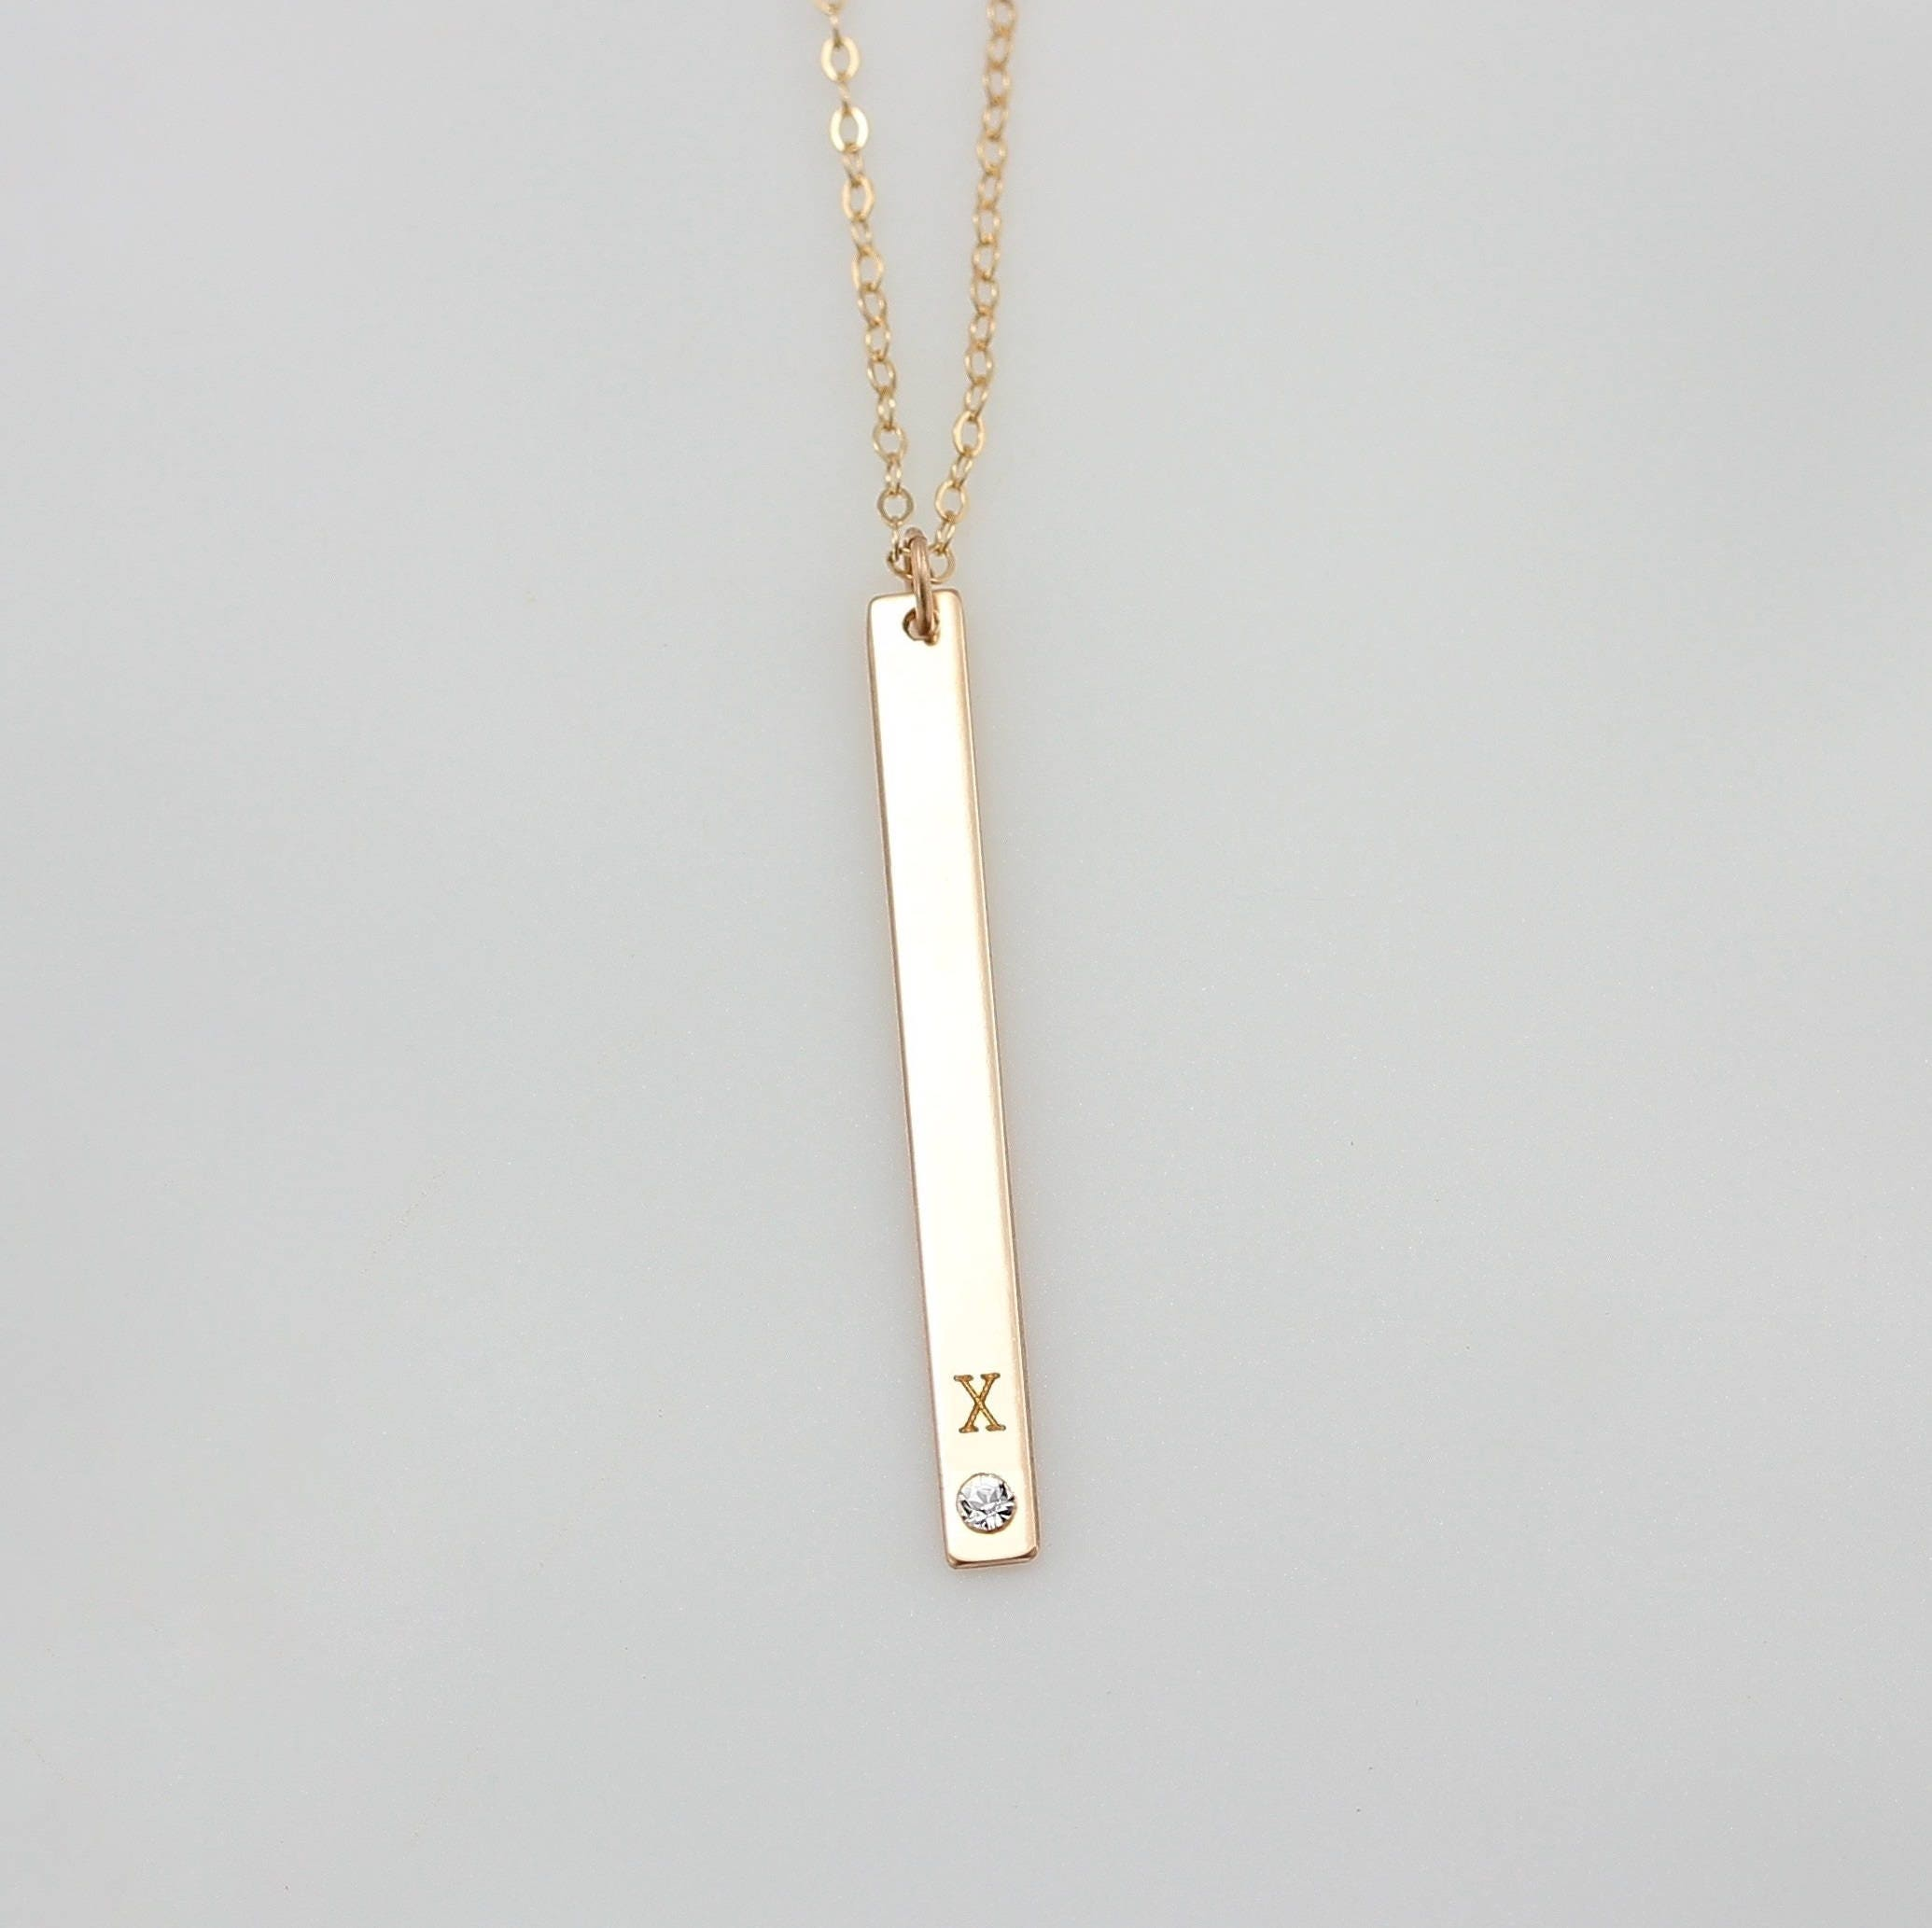 18th Birthday Cz T Bar Sterling Silver Heart Bracelet Can: Personalized Vertical Bar Necklace Initial Necklace / Long